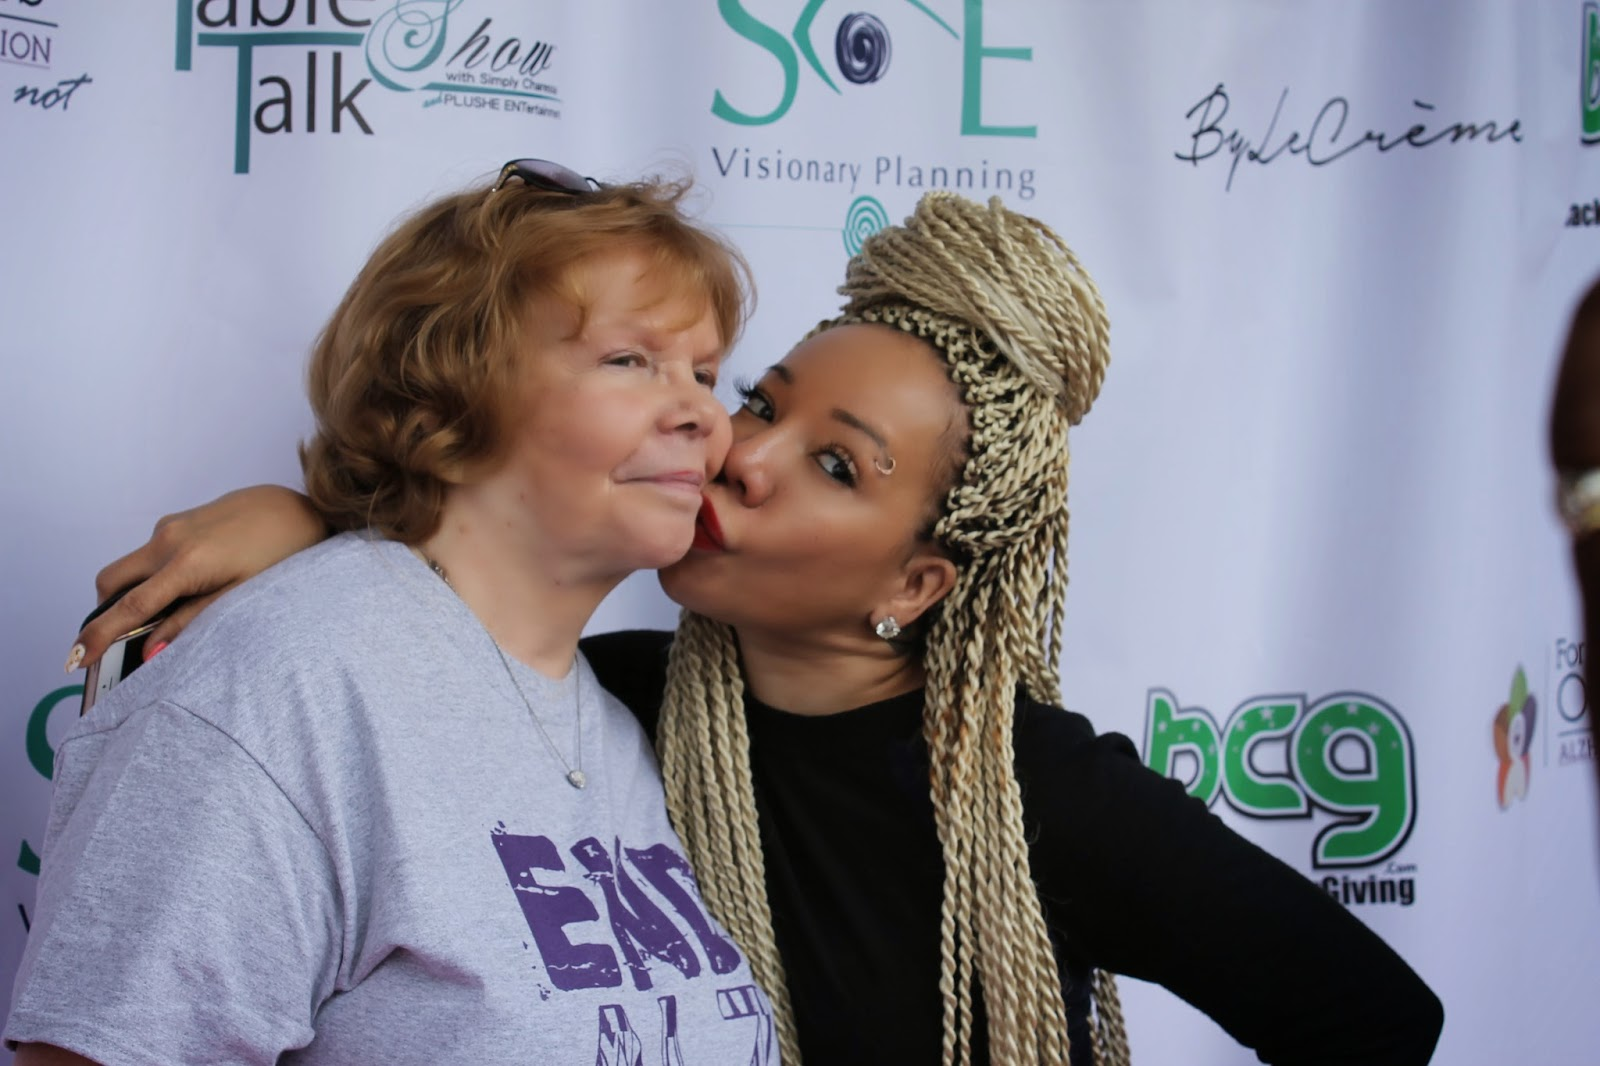 Tiny Harris Shares More Pics From The The Black Music Honor Awards - Fans Adore Her Mom Who Is Also Present At The Important Event